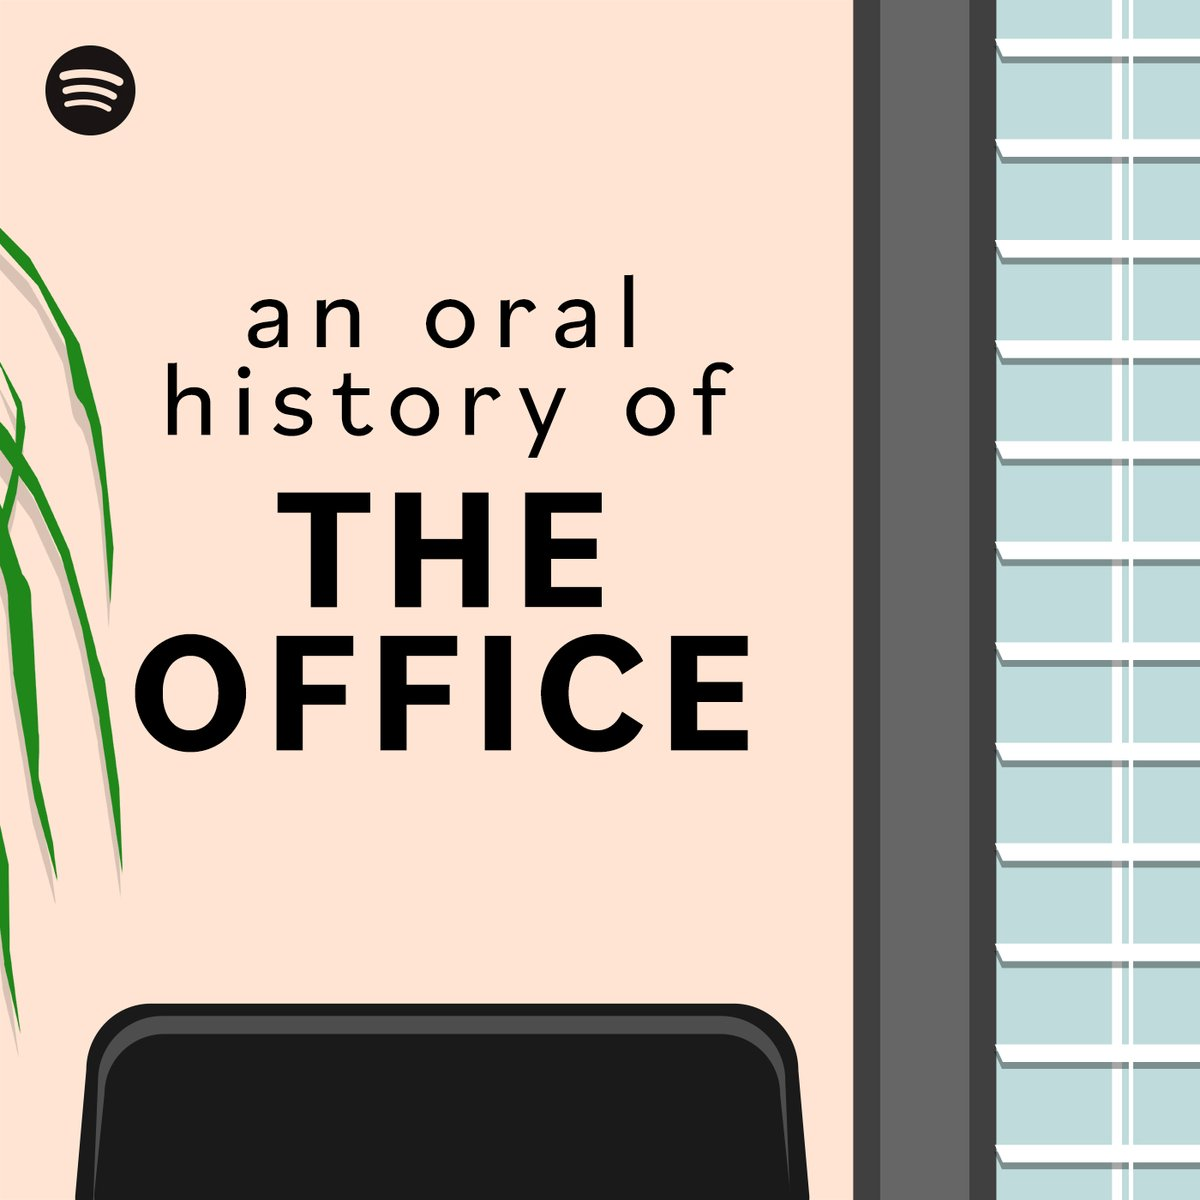 Hold on to your chili, @BBBaumgartner!   The #OralHistoryOfTheOffice podcast drops July 14 🌶  Only on @Spotify. https://t.co/2kXr7fznSK